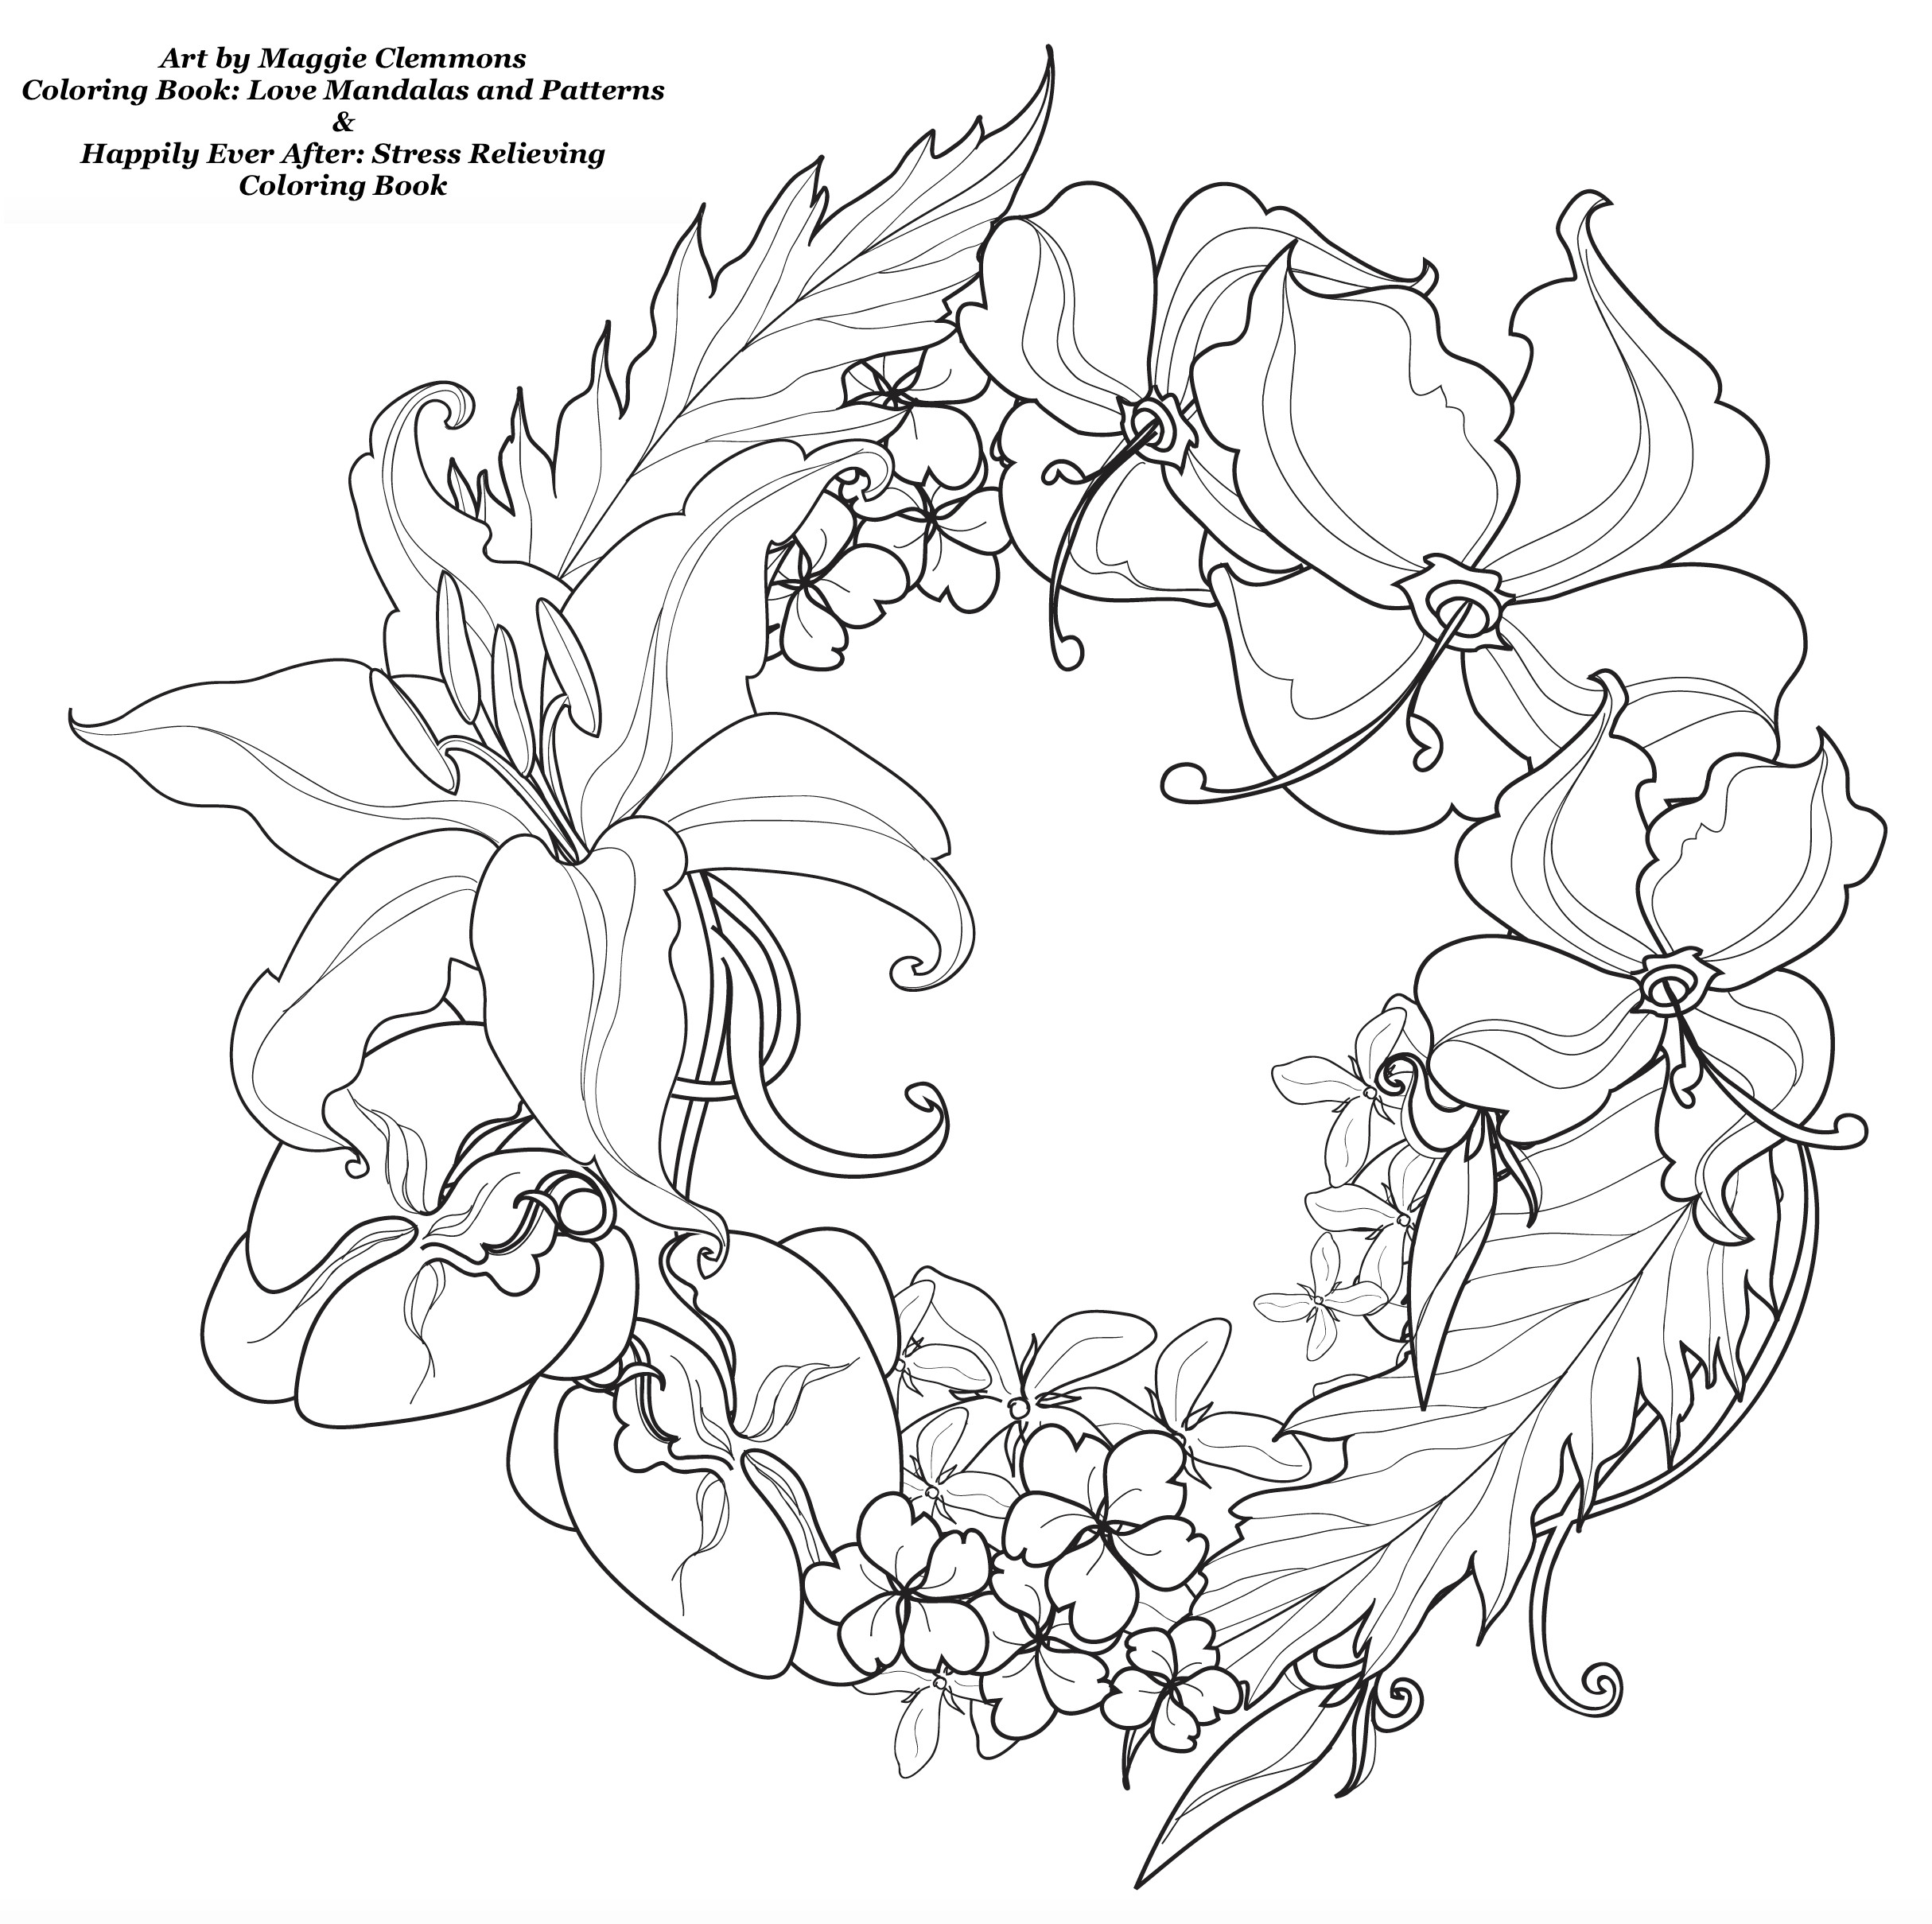 Sexy Adult Coloring Books  Love Coloring Pages For Adults Full Naked Bo s